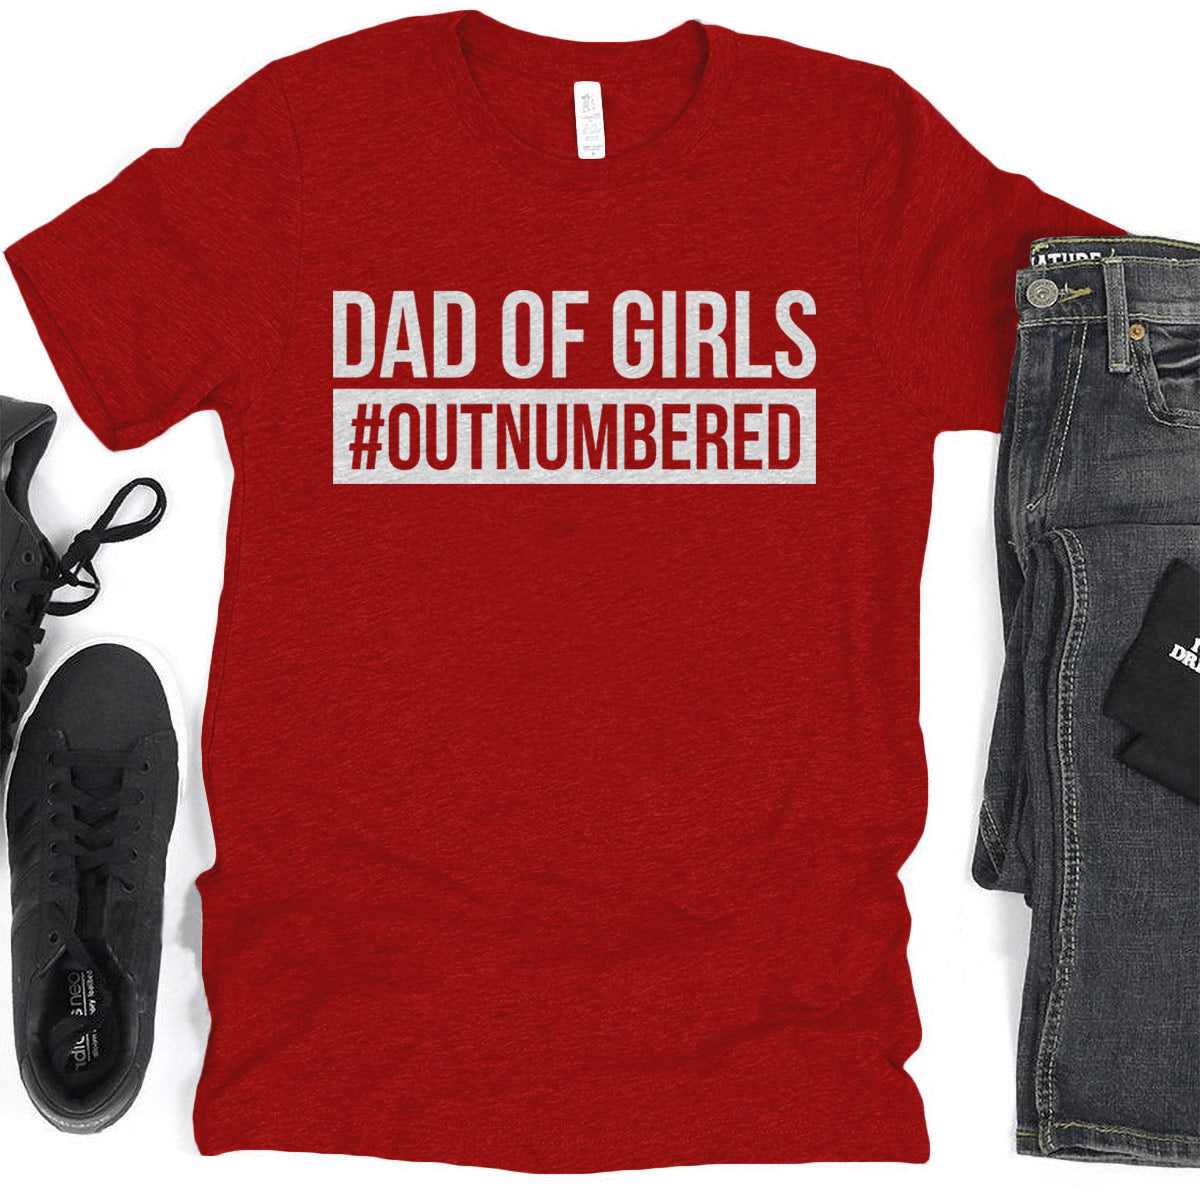 Dad of girl #outnumbered